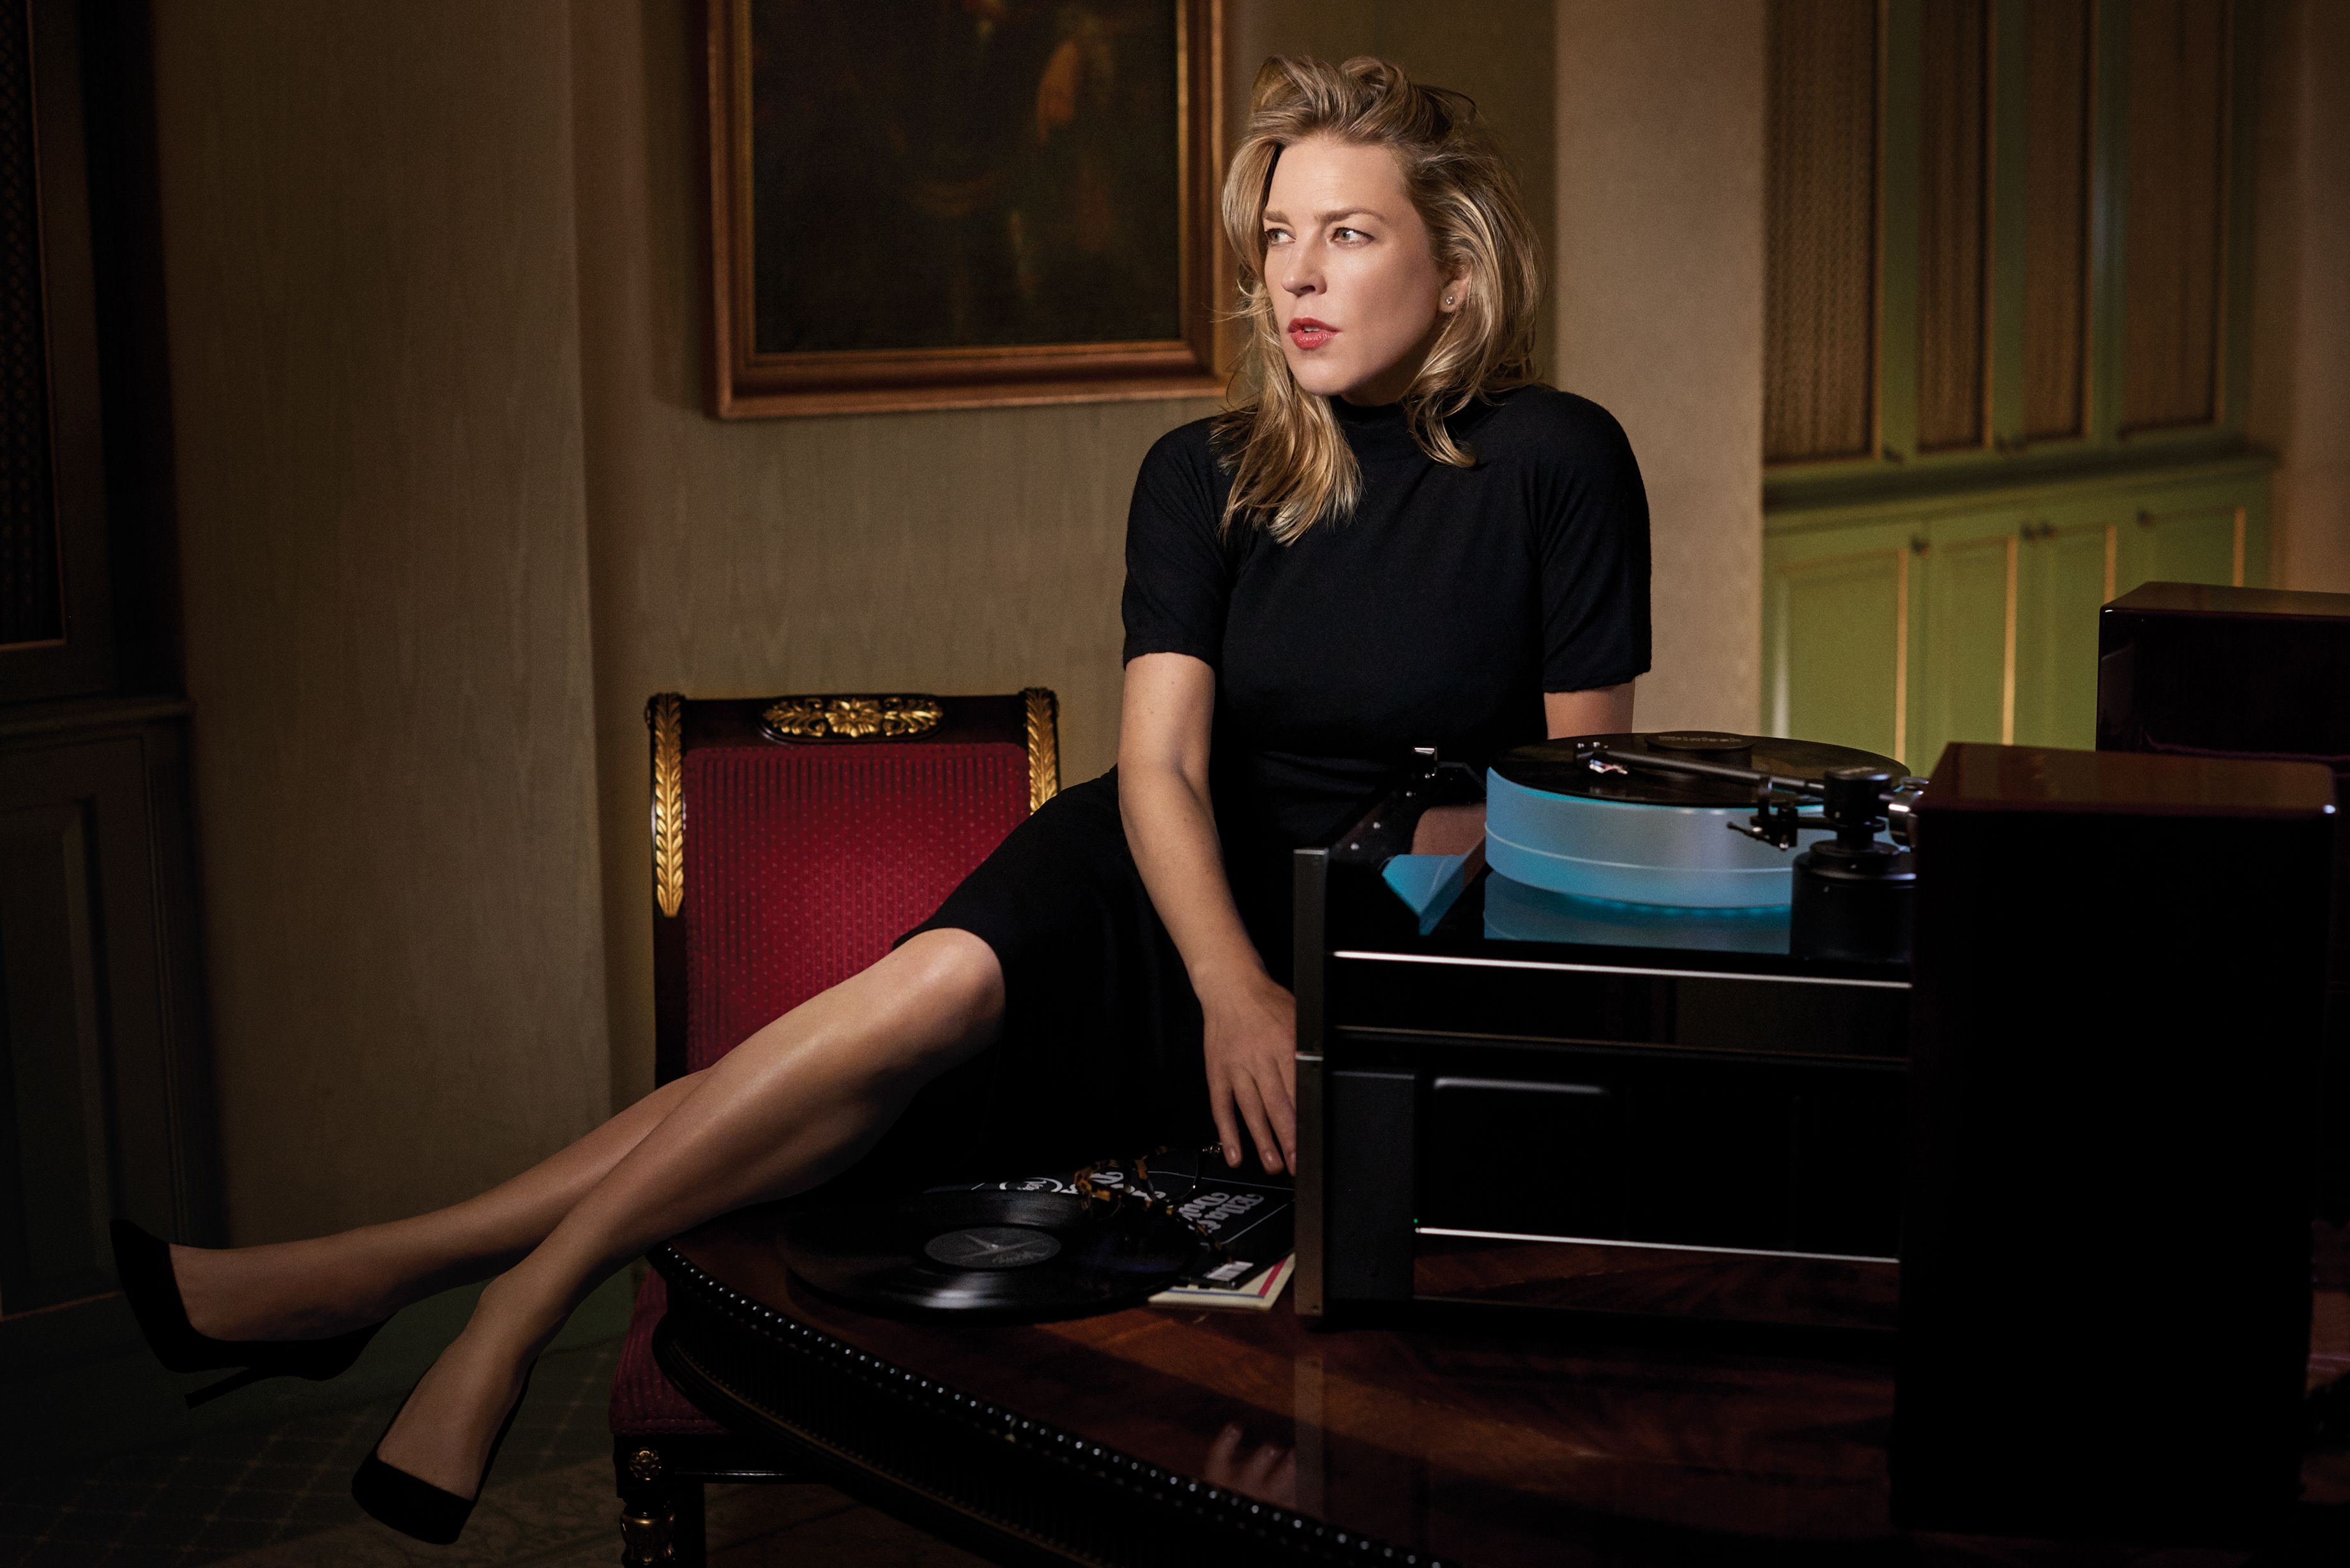 Diana Krall World Tour: Turn Up the Quiet